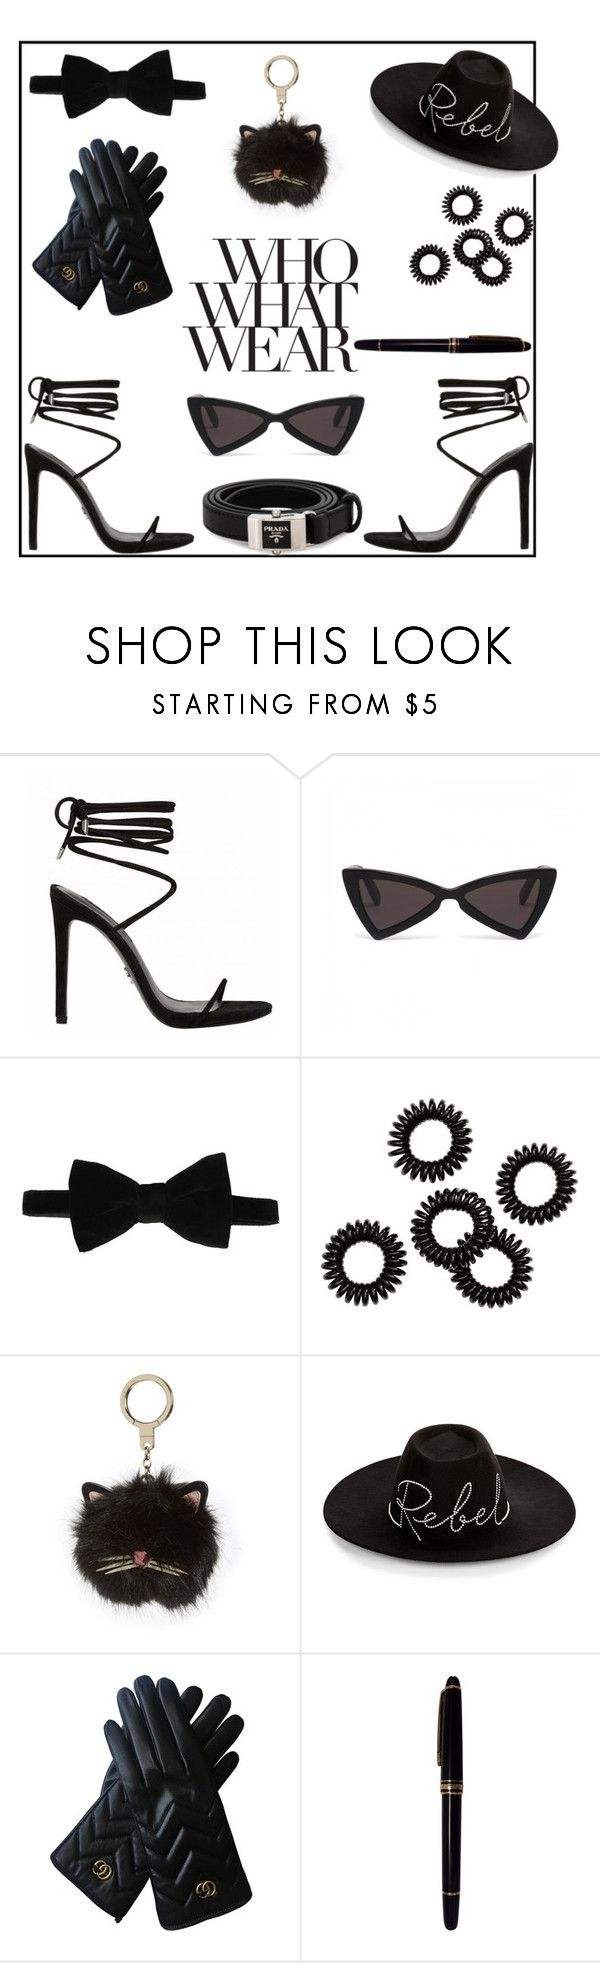 """""""Who What Wear"""" by daniellejosephinevogue ❤ liked on Polyvore featuring Who What Wear, HUGO, Kate Spade, Eugenia Kim, Gucci, Mont Blanc and Prada"""